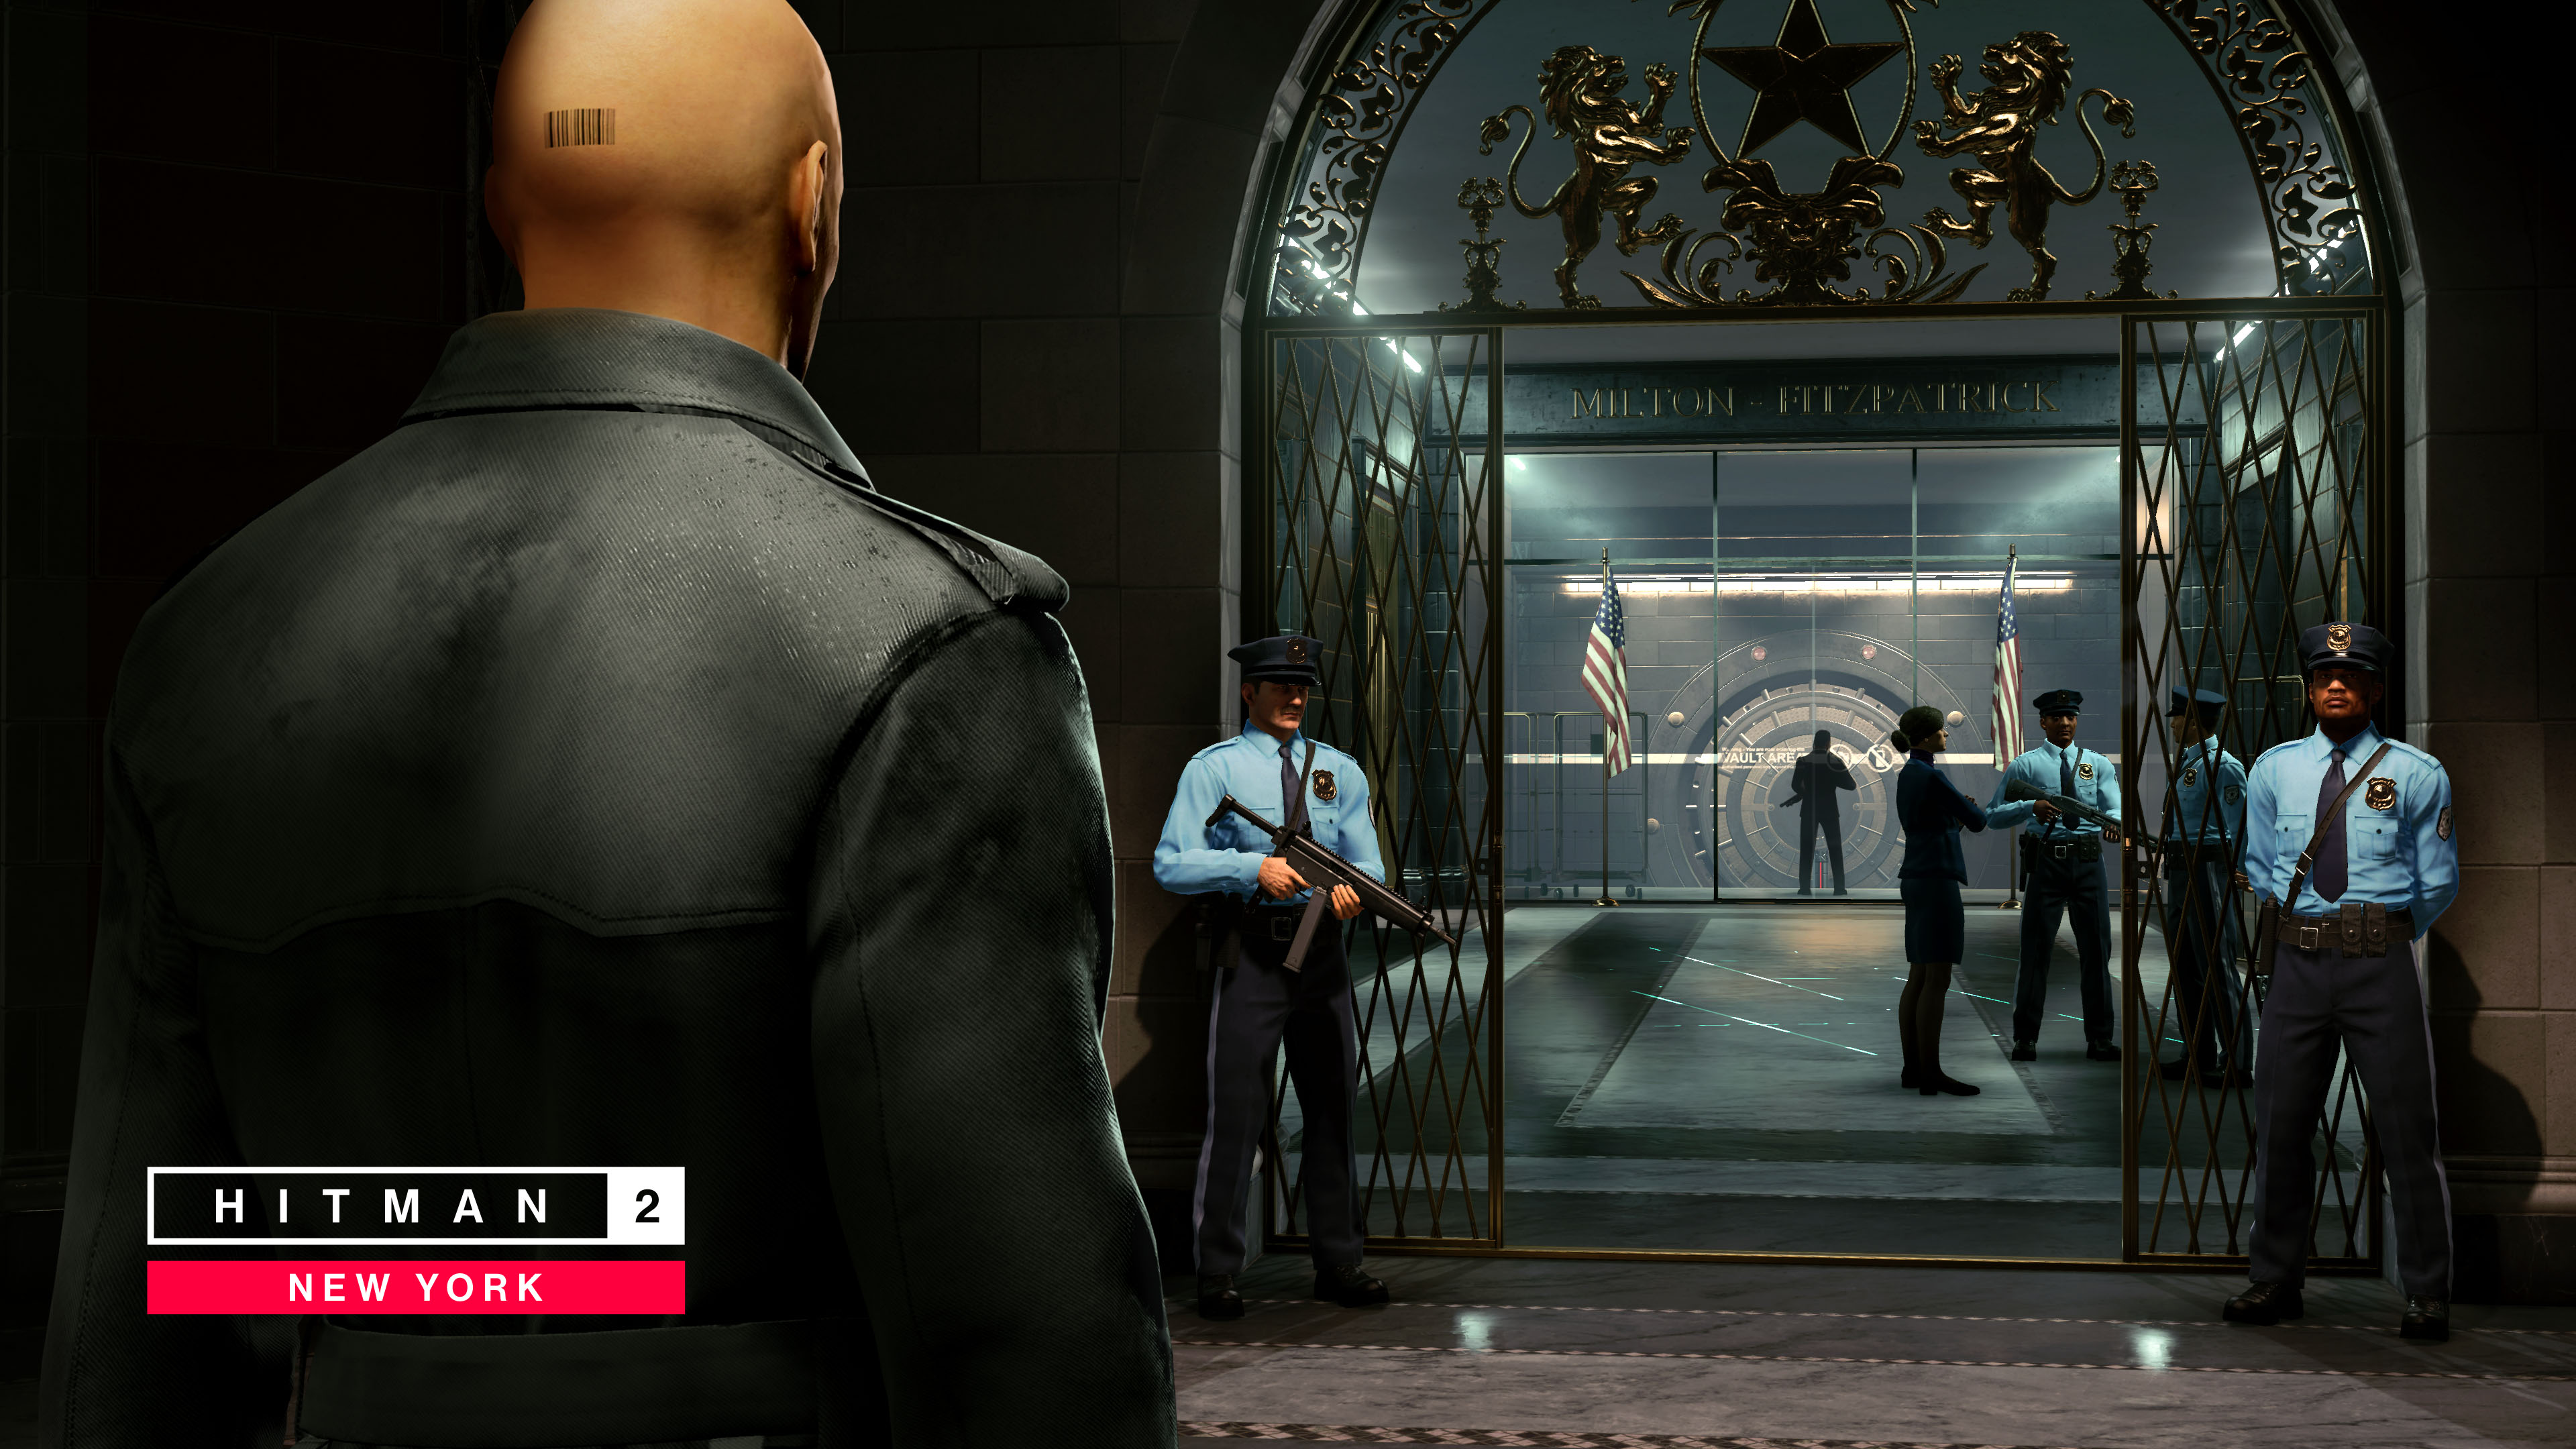 HITMAN_2_-_New_York_-_The_Bank_1_1561370214